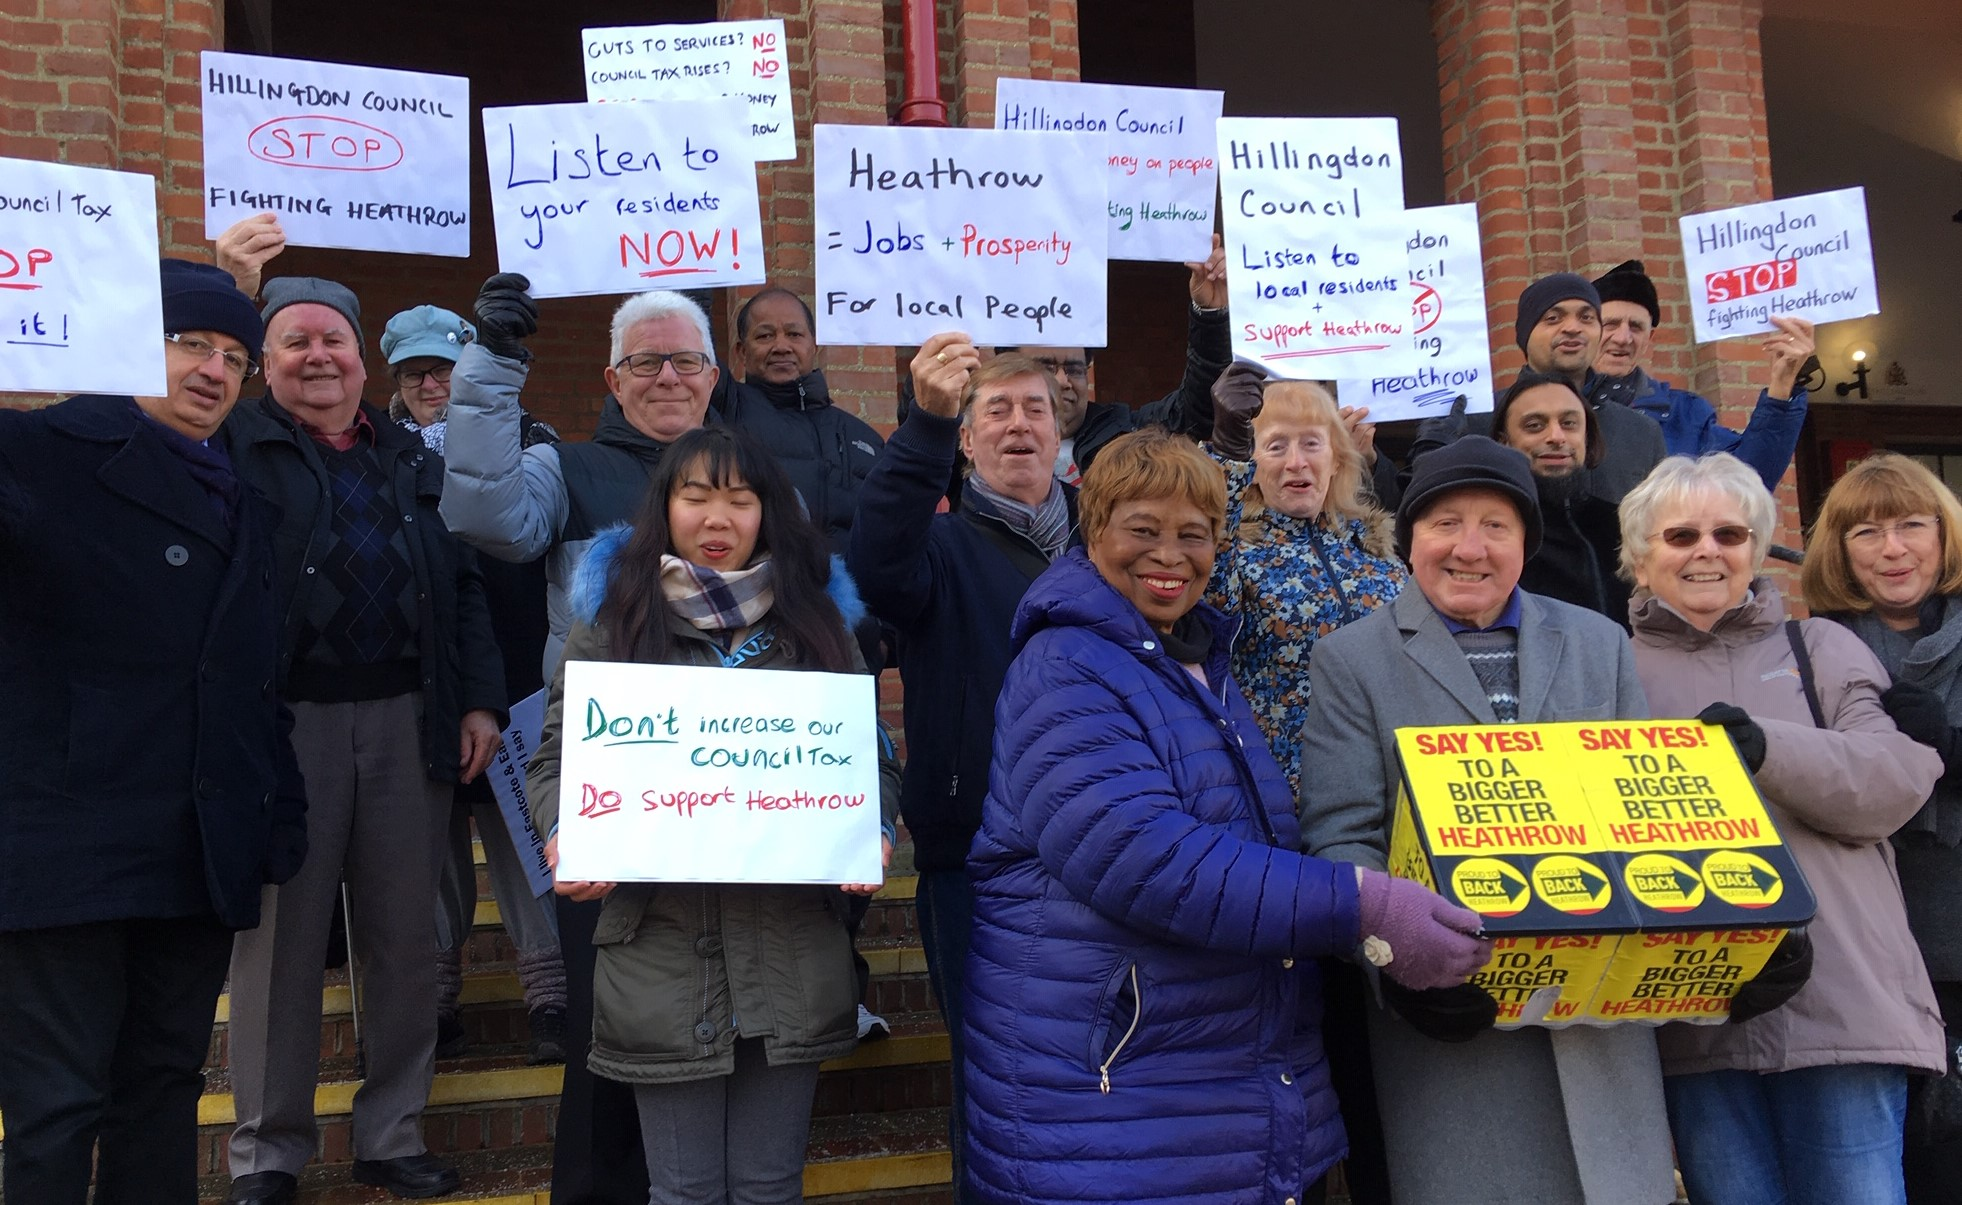 Back Heathrow Hillingdon residents at the civic centre